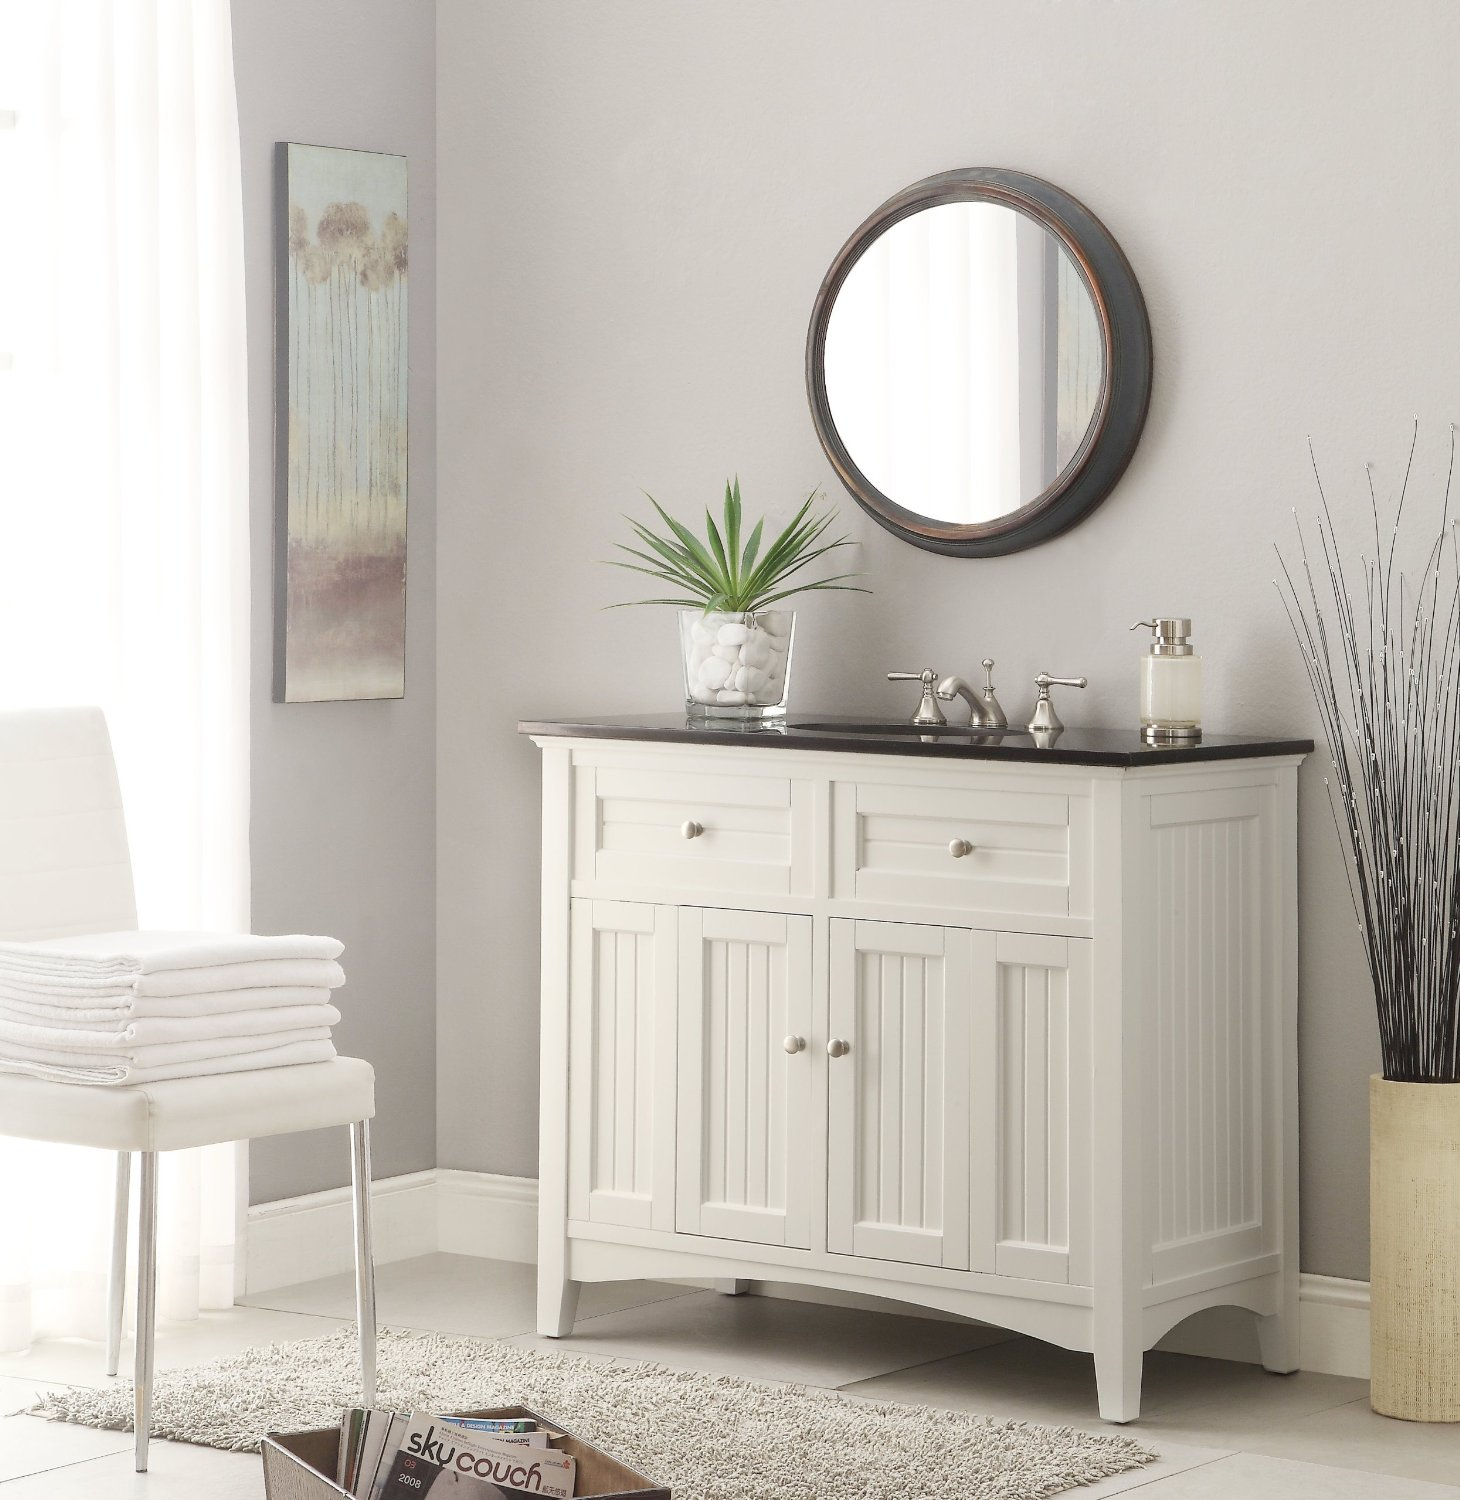 Adelina 48 75¢€ inch Antique White Sink Bathroom Vanity Black